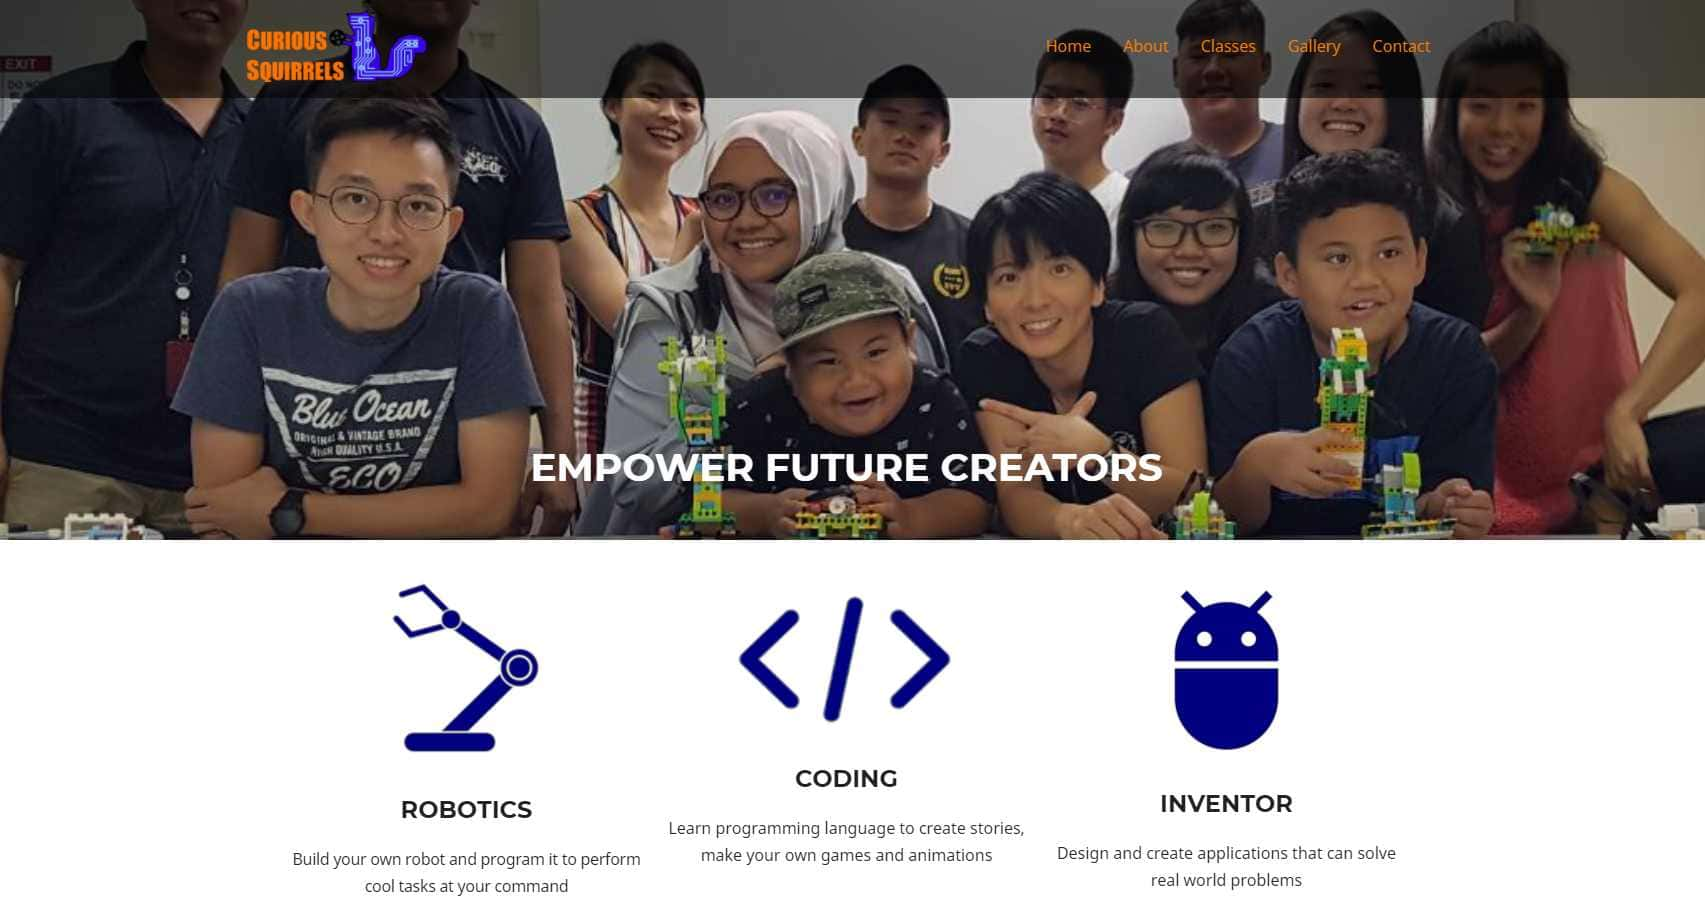 curious squirrels Top Coding Courses for Kids in Singapore